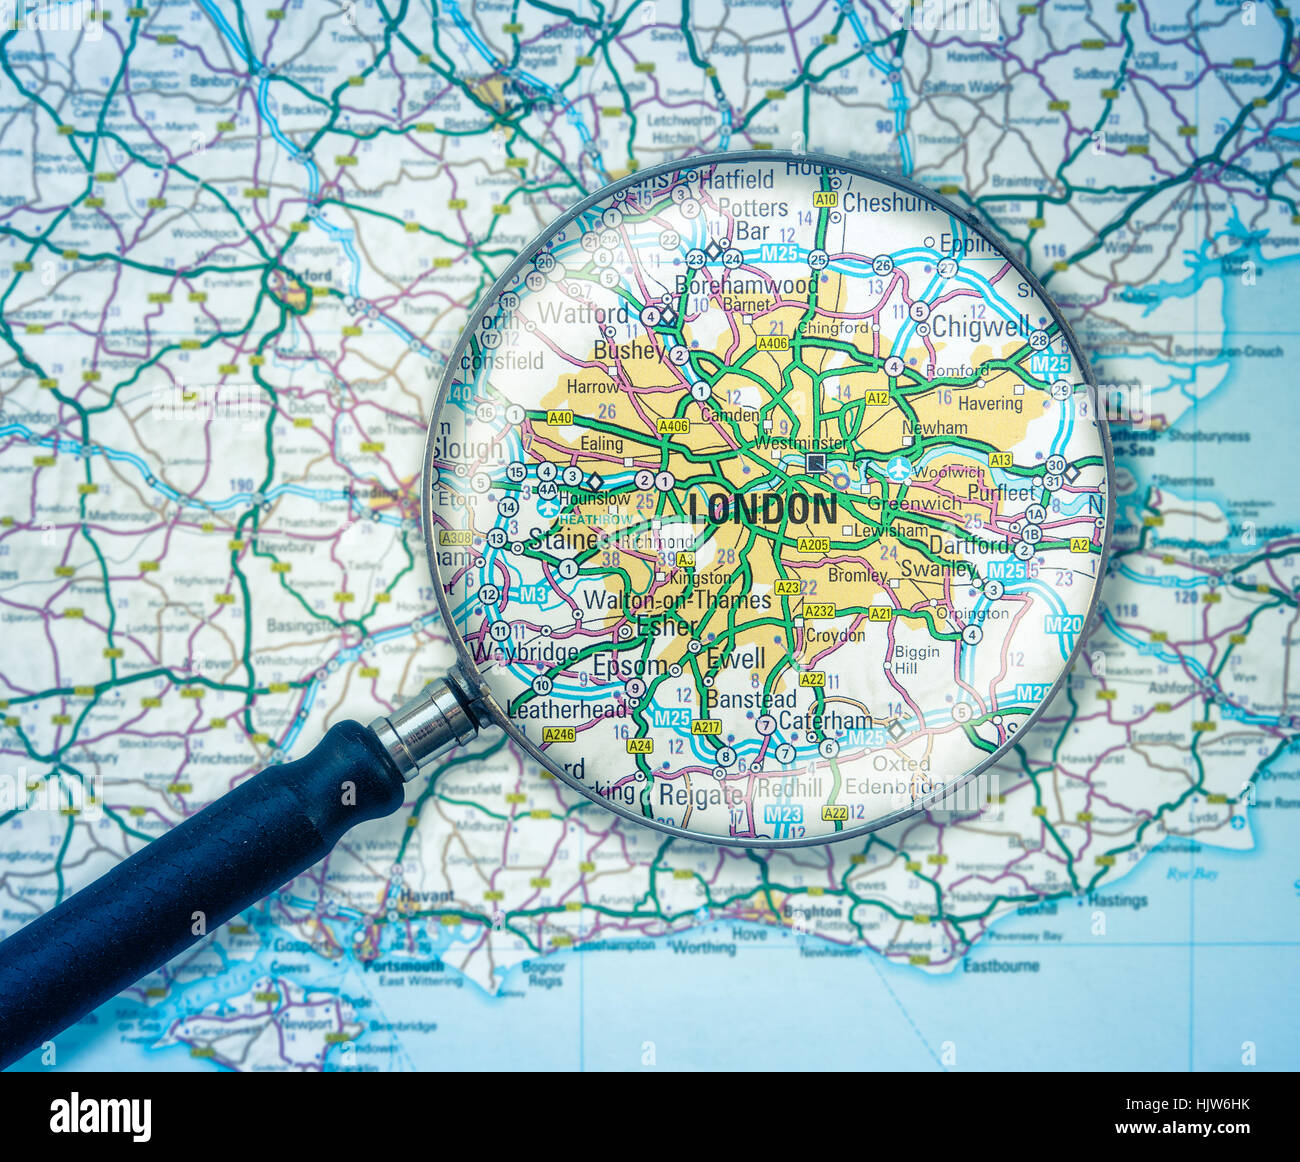 Map Over London.A Magnifying Glass Over A Road Map Of London England Stock Photo